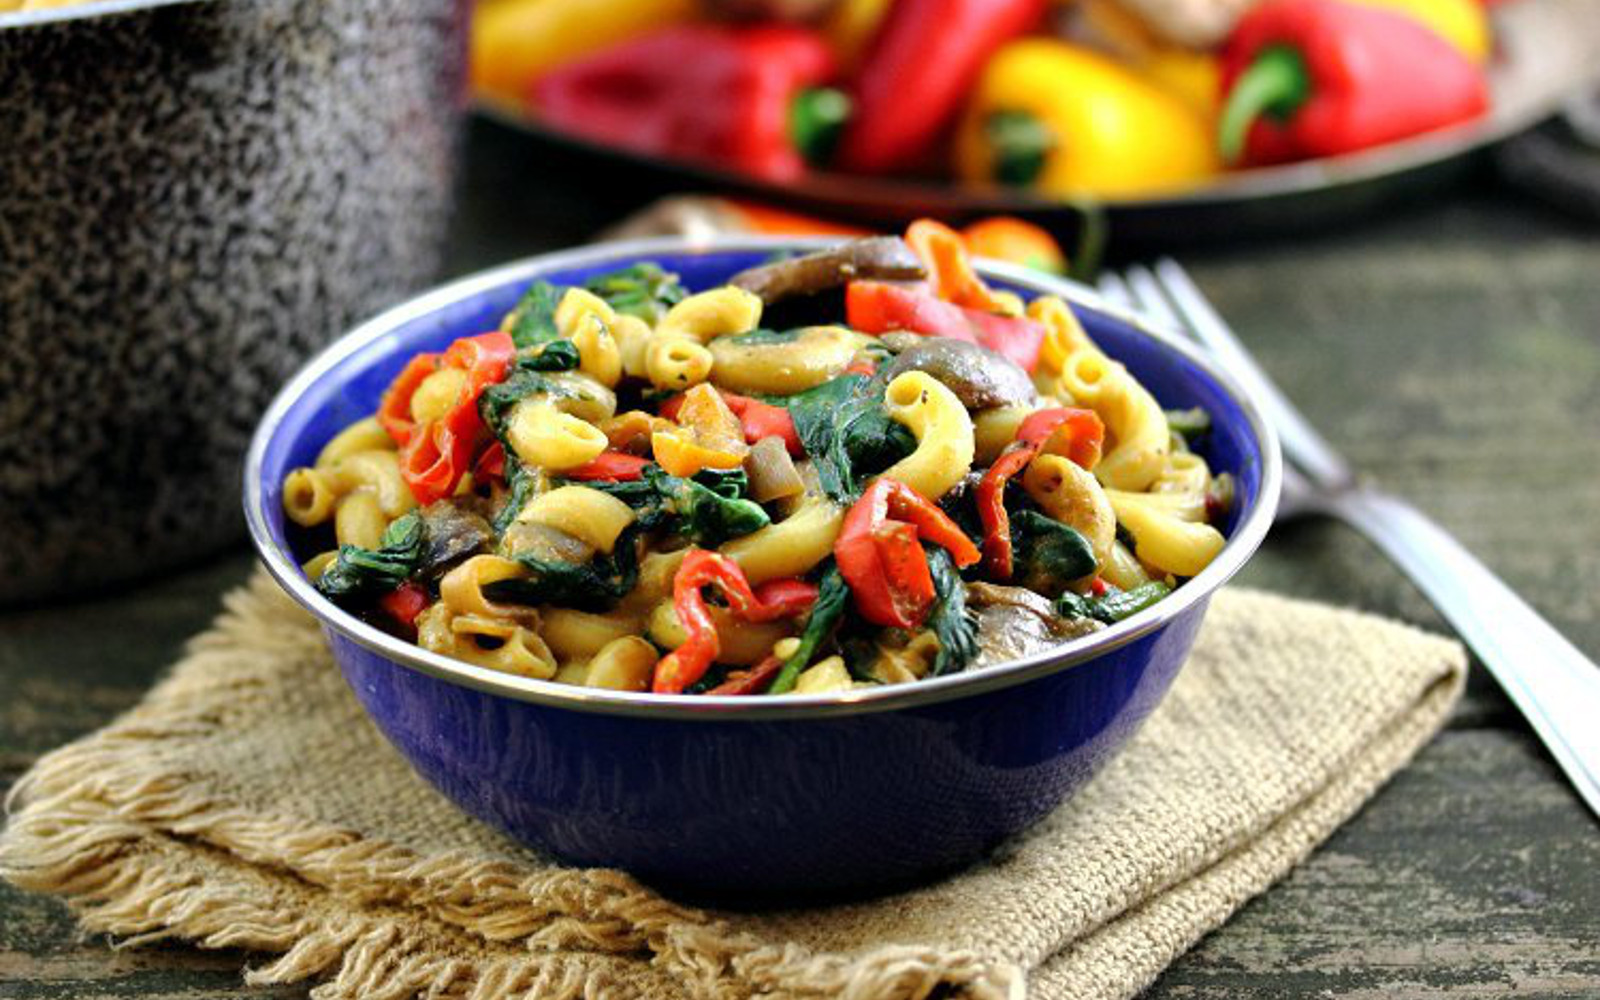 Vegan Mac and Cheese With Mushrooms, Peppers, and Spinach